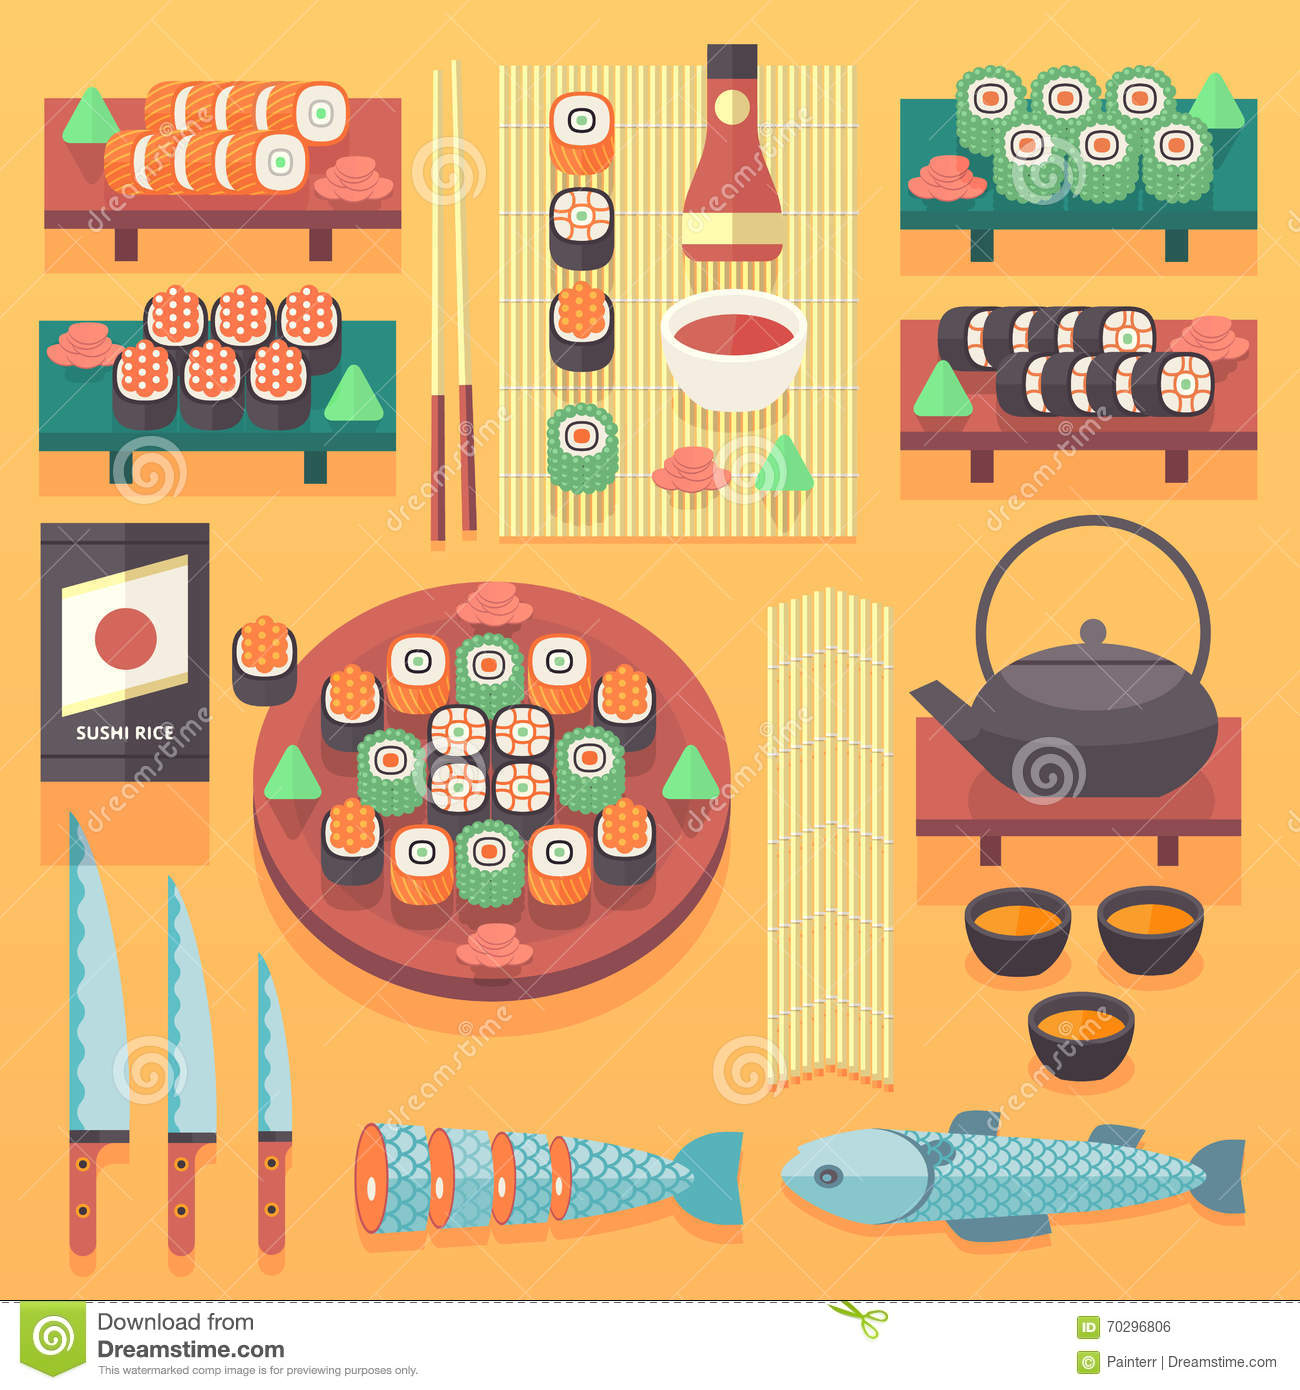 Japanese Traditional Kitchen Design: Japanese Food And Cuisine Illustration. Flat Vector